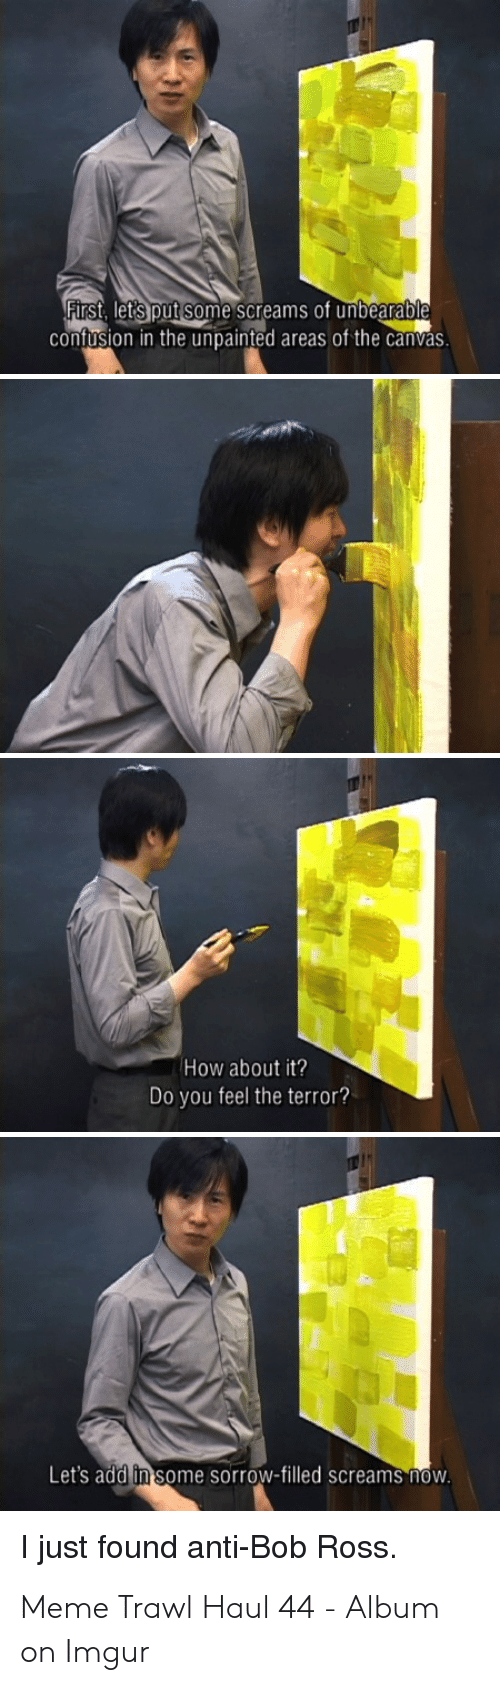 Meme, Bob Ross, and Canvas: First, let's put some screams of unbearable  confusion in the unpainted areas of the canvas.  How about it?  Do you feel the terror?  Let's add in some sorrow-filled screams now.  I just found anti-Bob Ross Meme Trawl Haul 44 - Album on Imgur